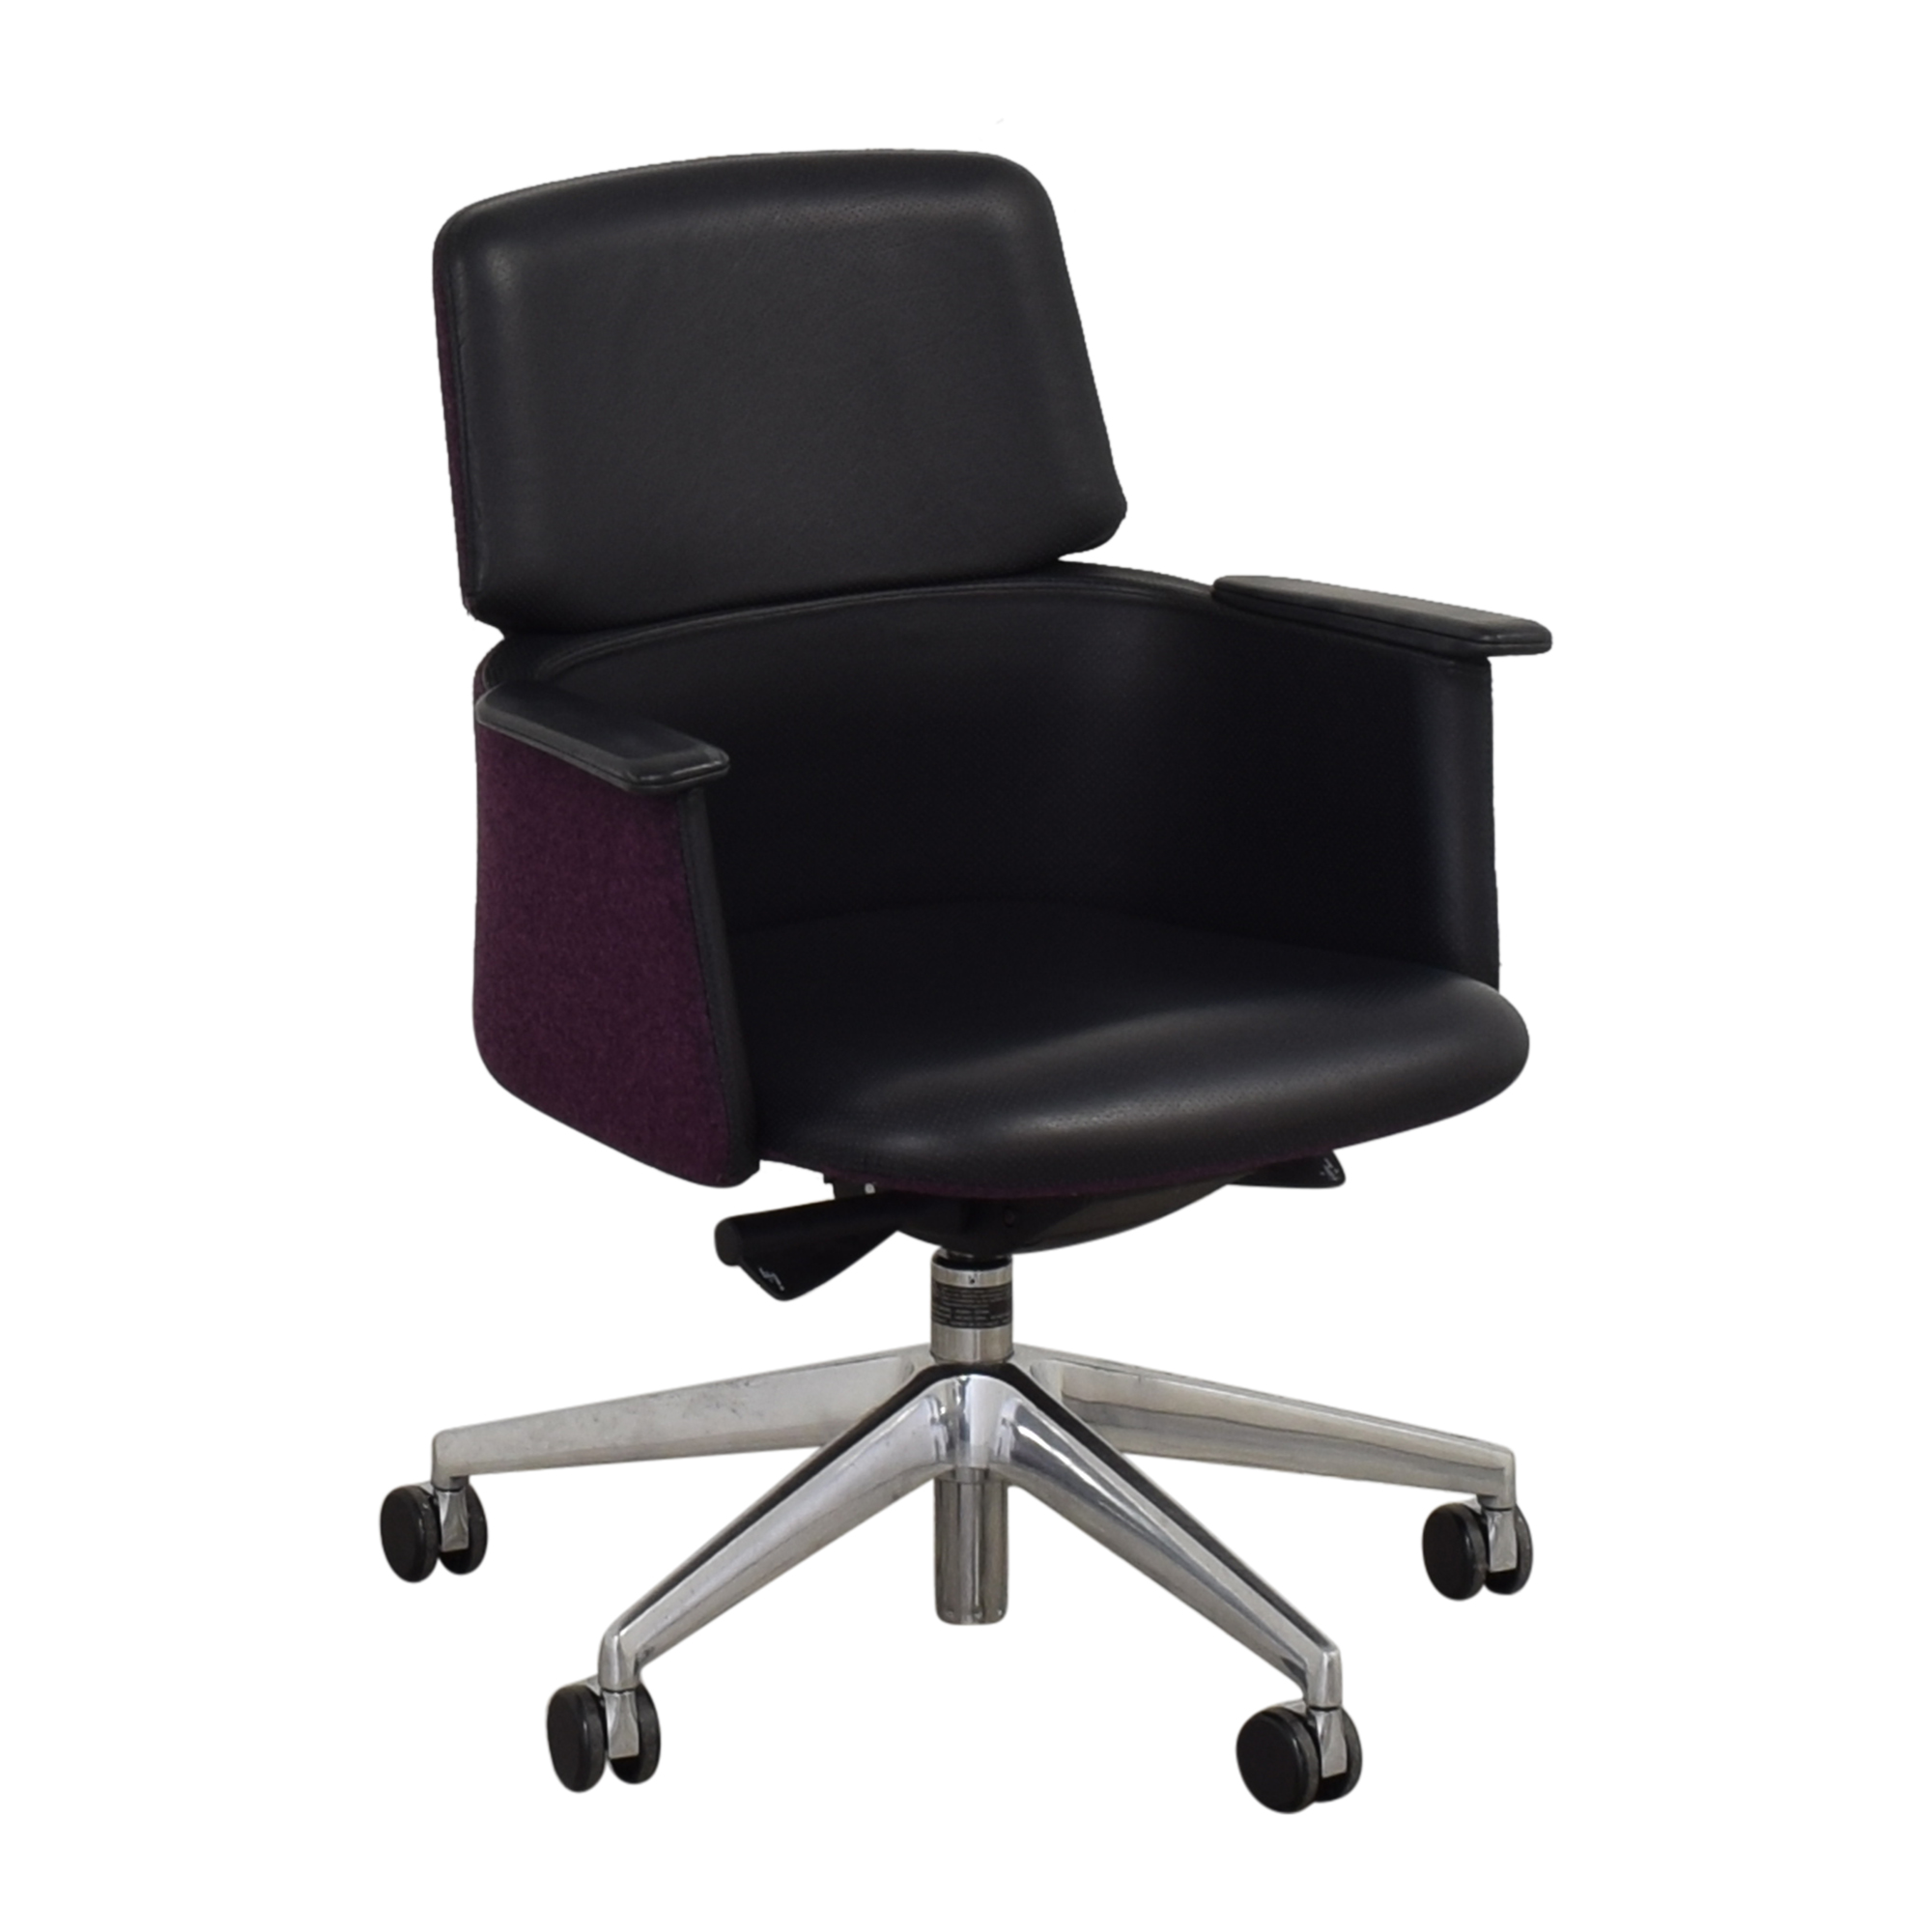 buy Koleksiyon Tola Task Chair Koleksiyon Home Office Chairs